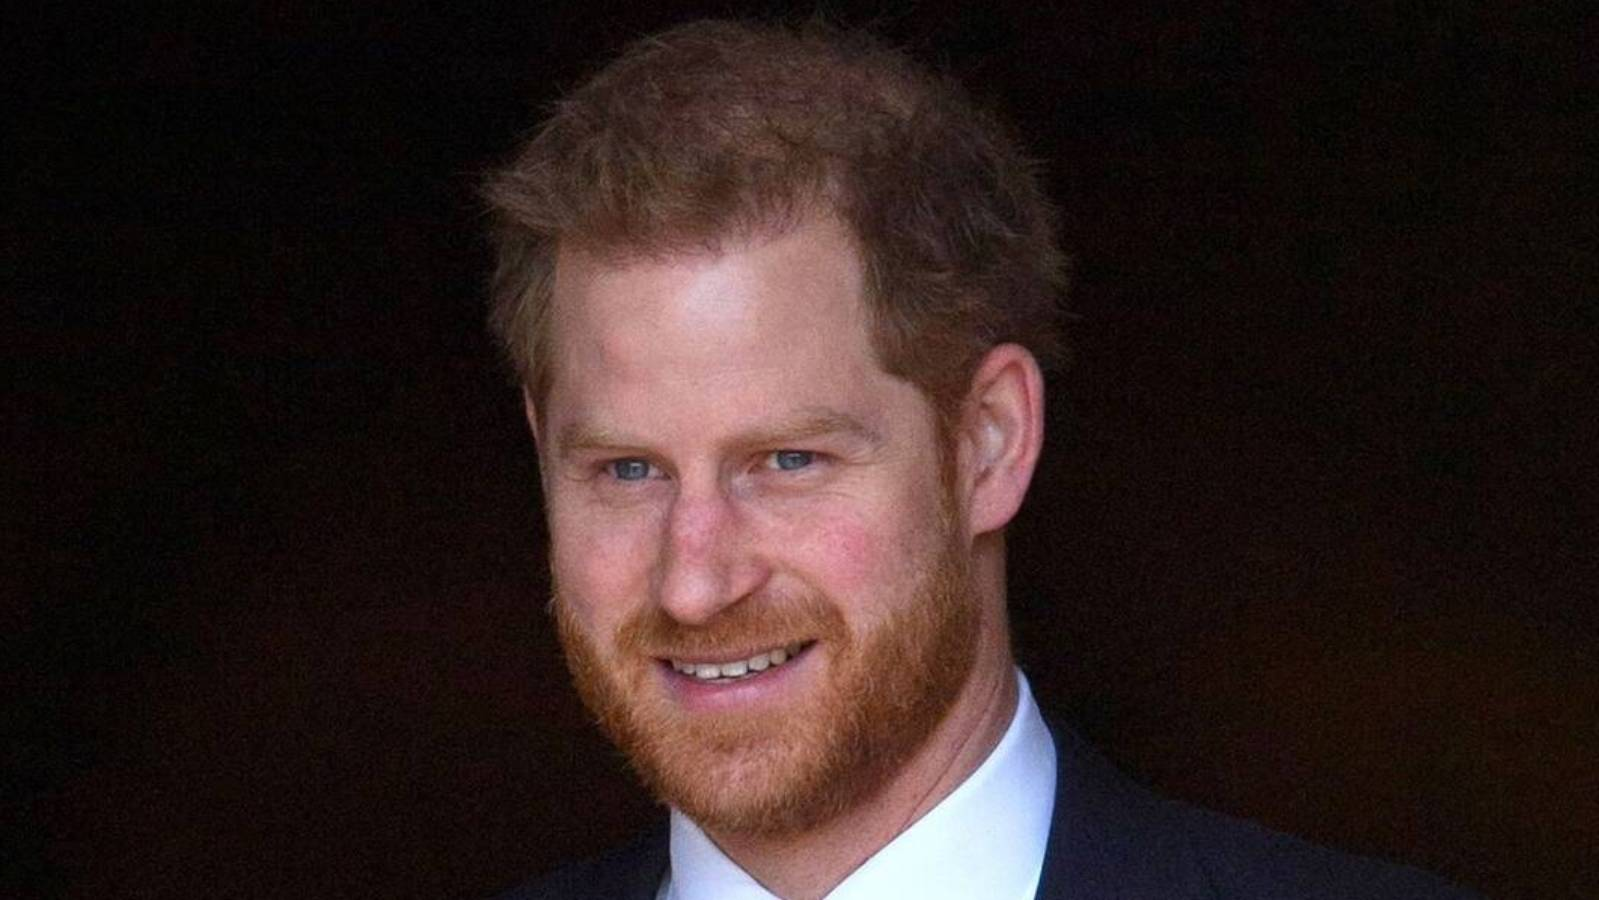 Prince Harry addresses those naked Las Vegas photos in his most revealing interview yet